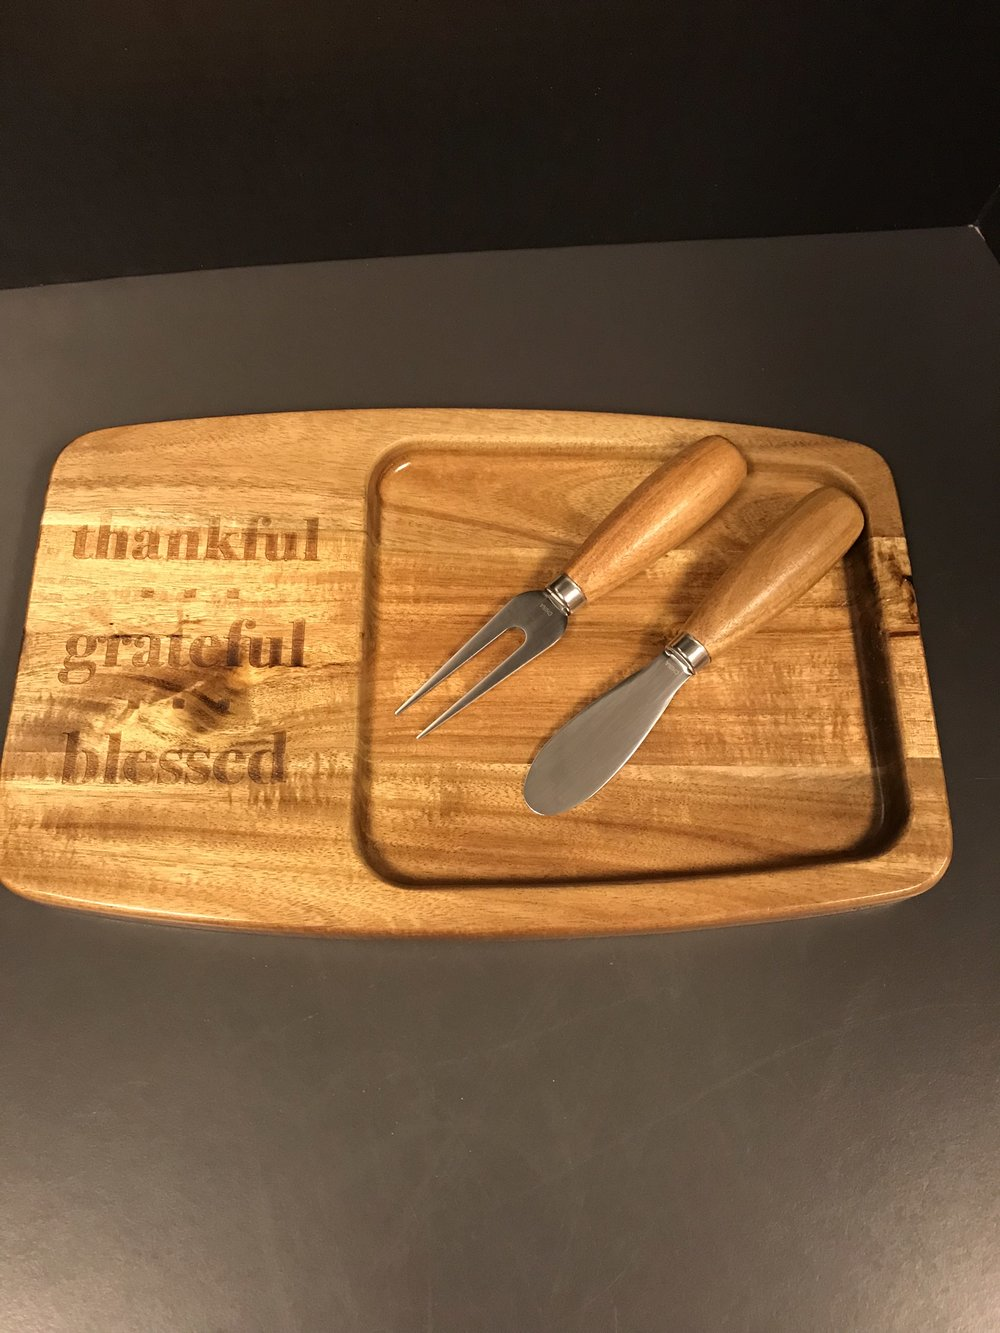 Pampered Chef Cheese Platter Gift Set - Value $35